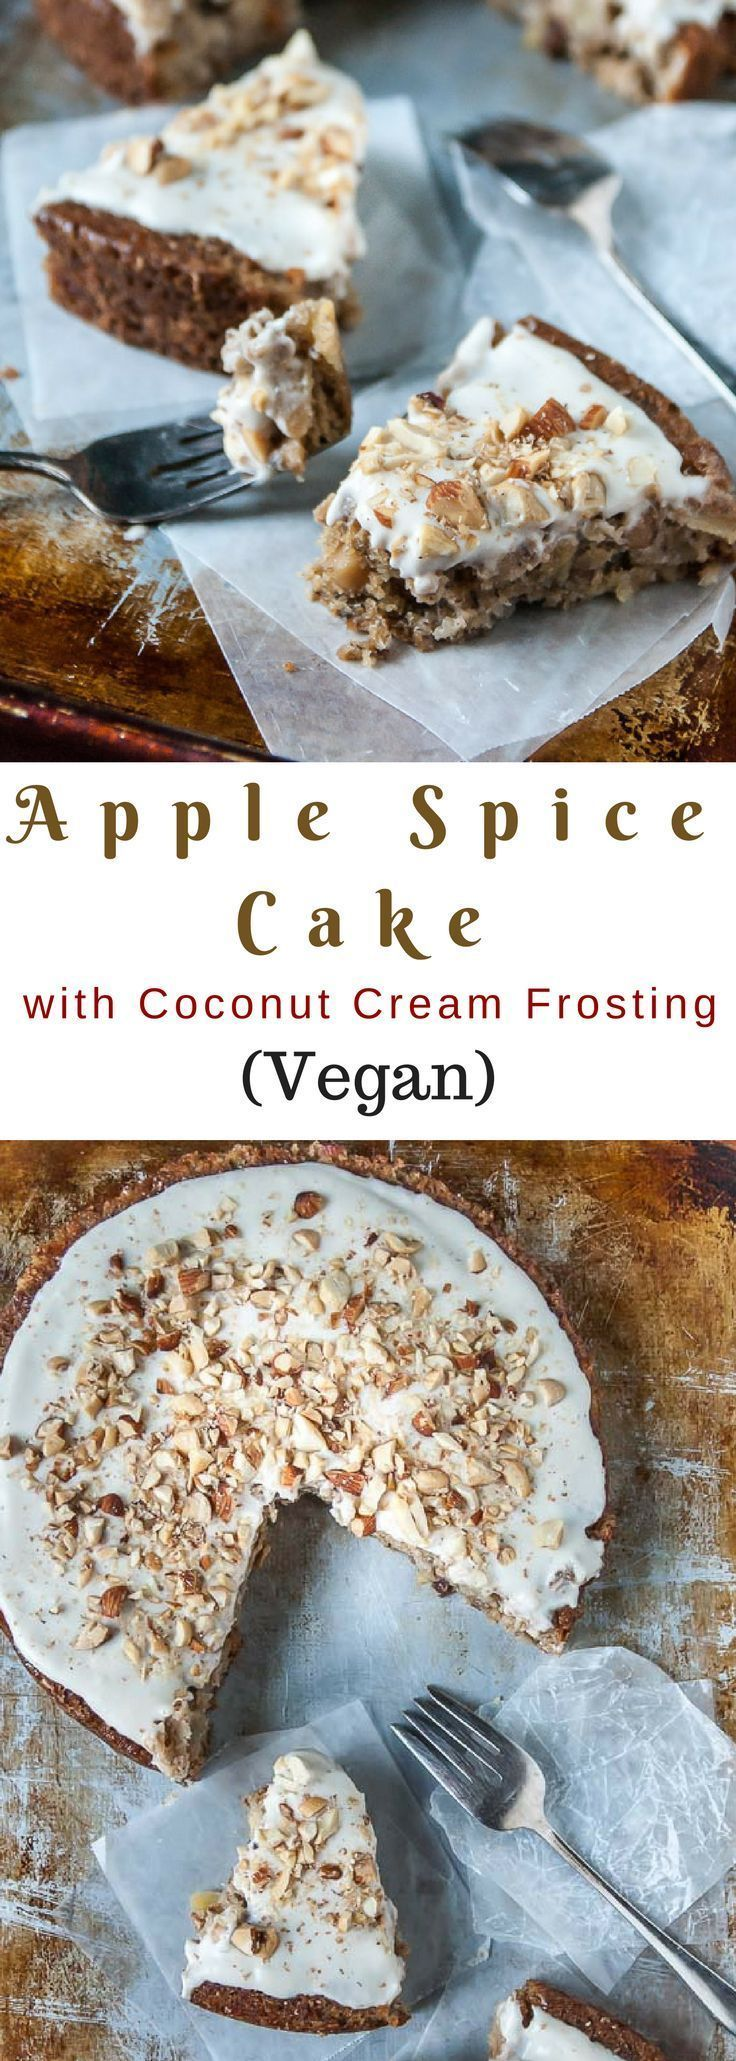 Spiced apples and a sweet coconut cream vegan frosting are the perfect components to this fall apple spice cake!